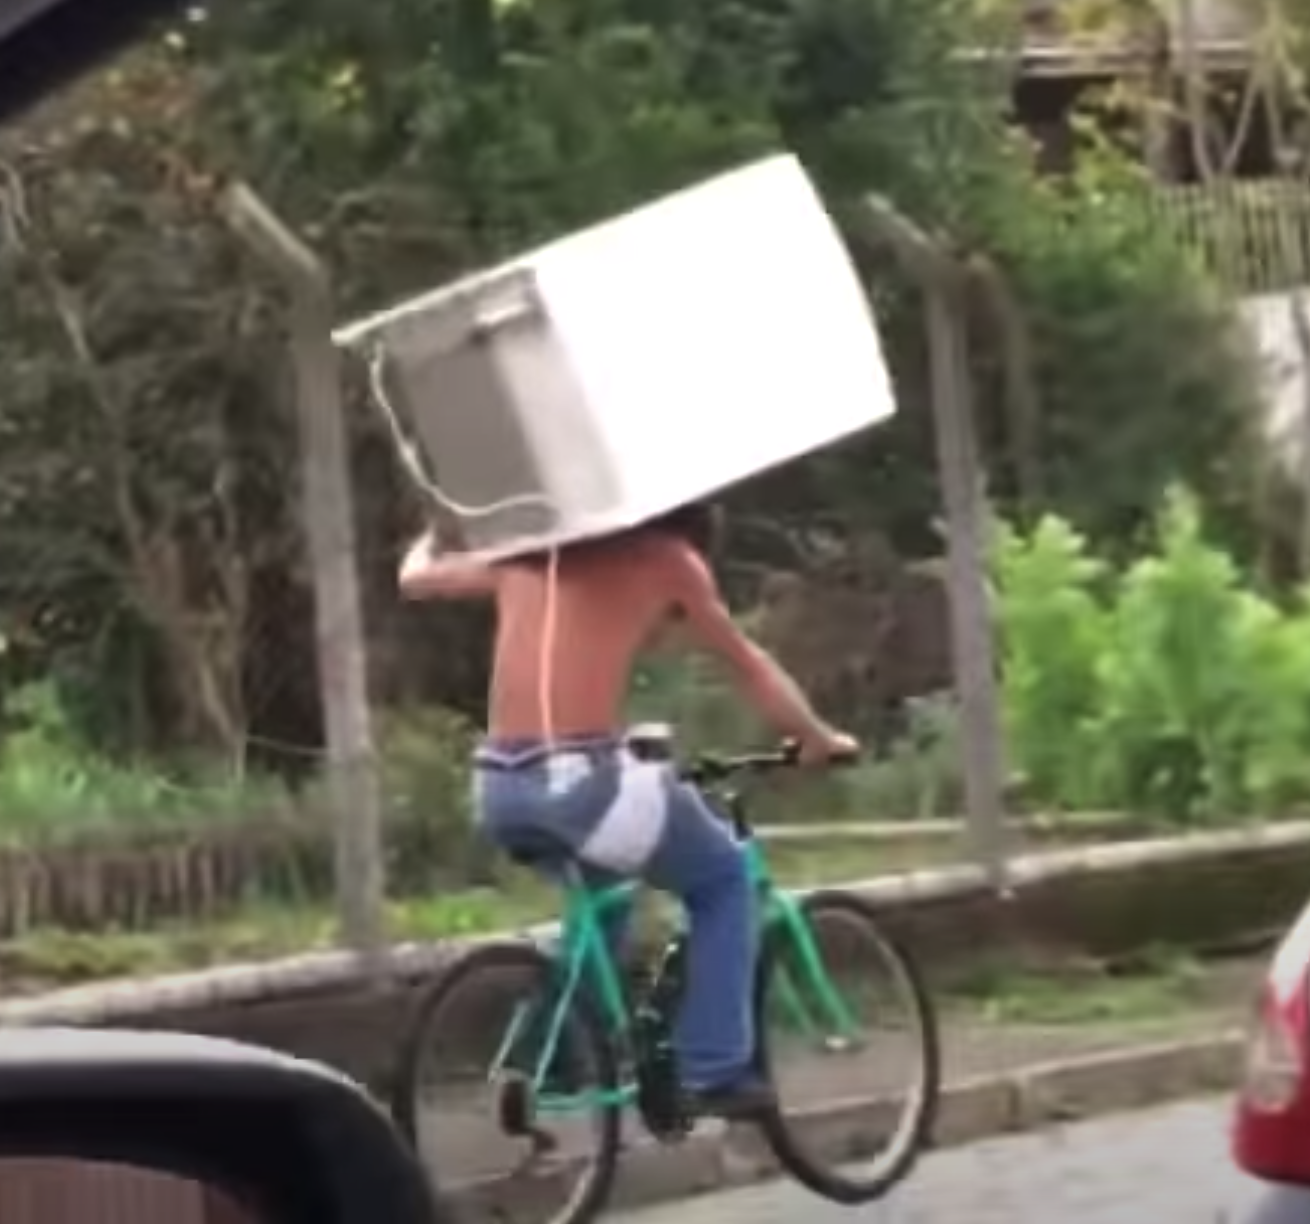 Man carrying refrigerator on bicycle, journal of wild culture, ©2020